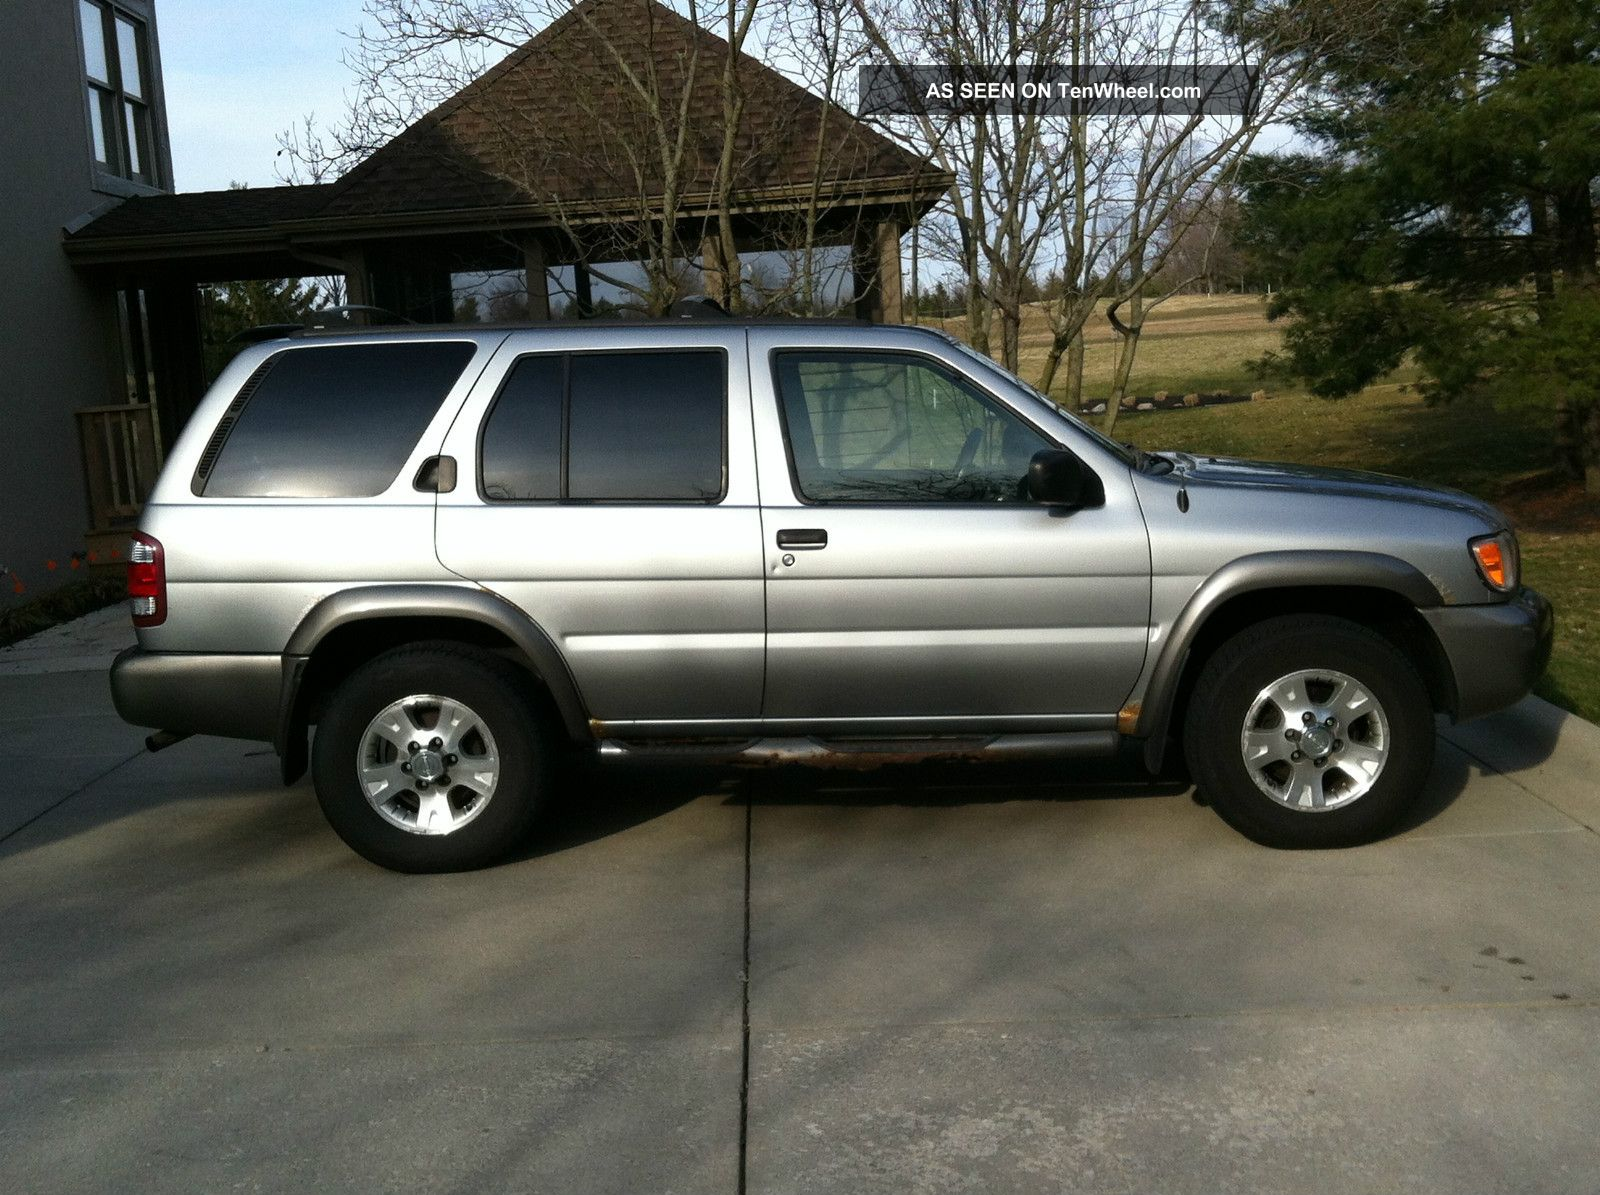 1999 Nissan Pathfinder Photos Informations Articles Tahoe Fuel Filter 6